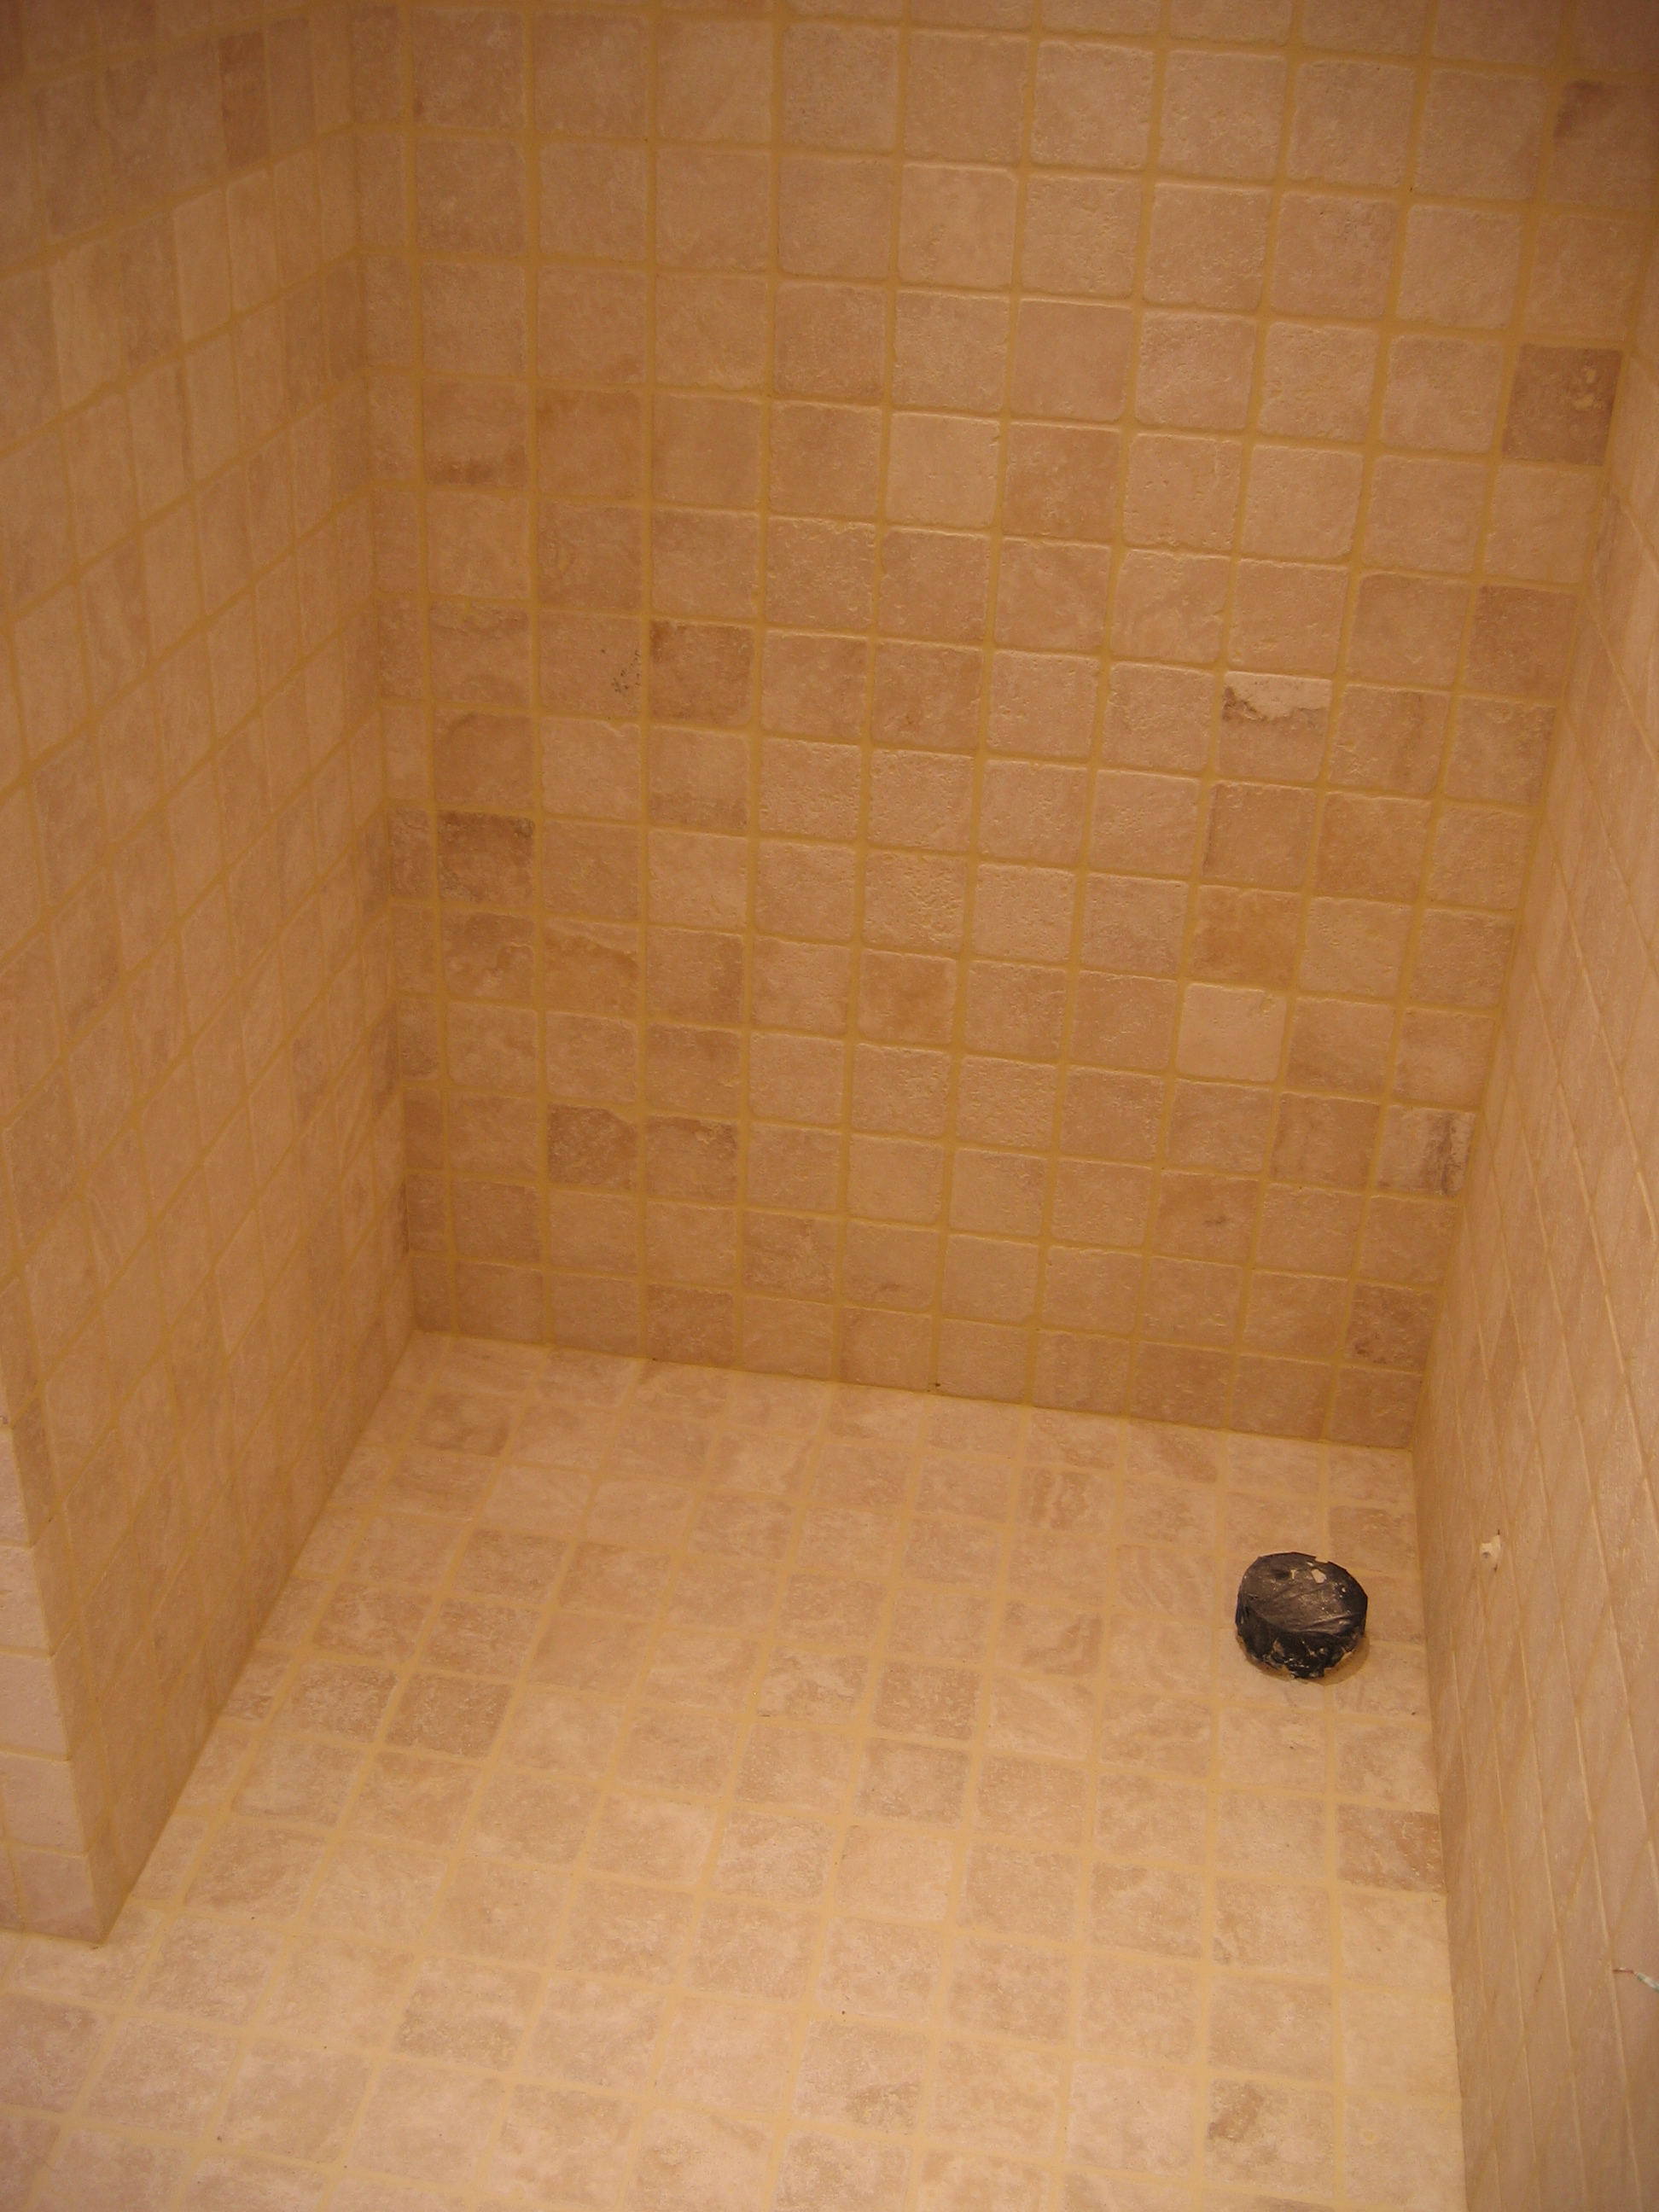 Carrelage pierre naturelle salle de bain simple carrelage for Carrelage en pierre naturelle salle de bain